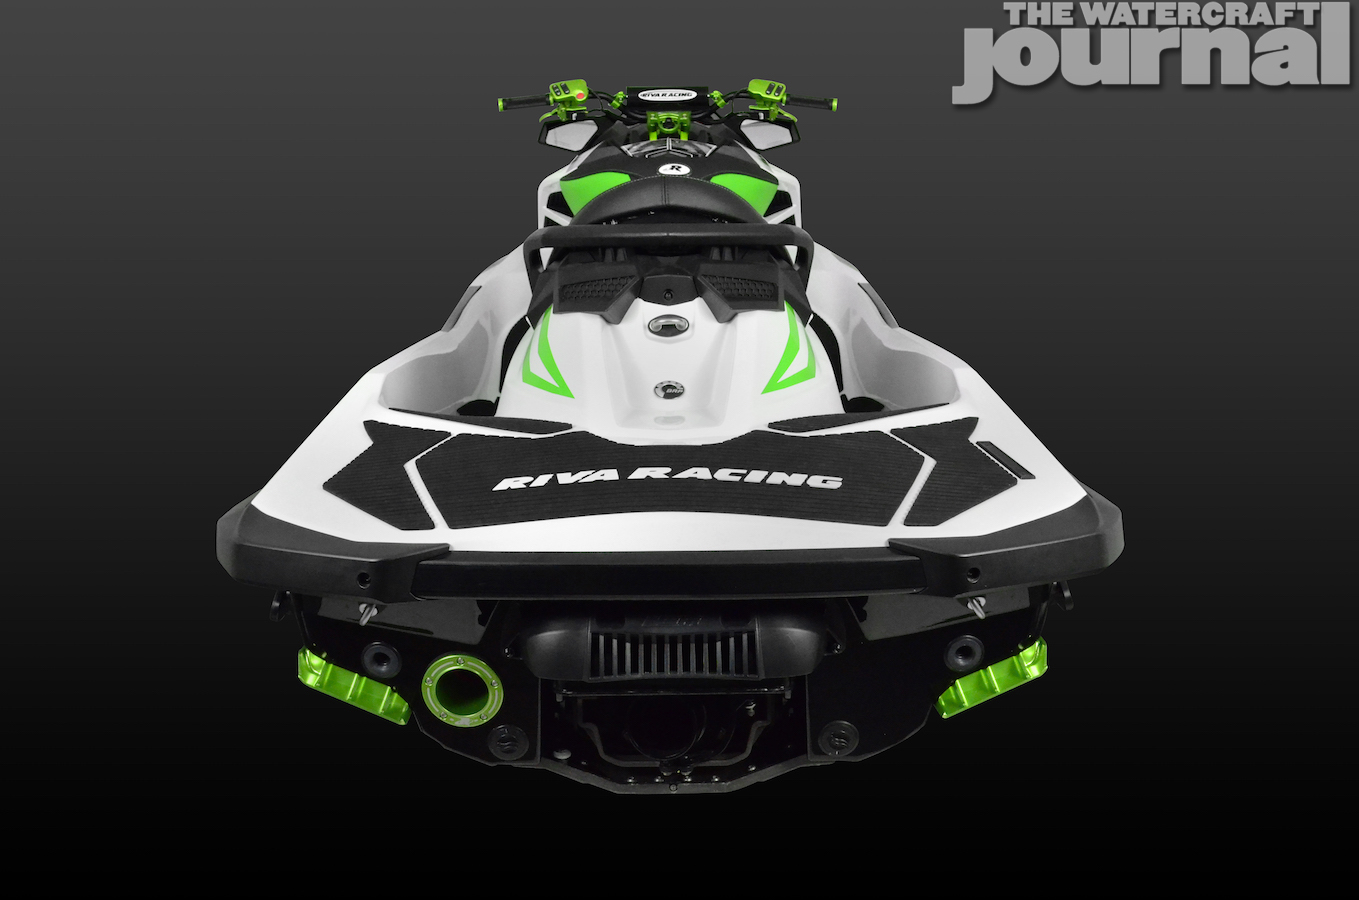 Green Seadoo readr